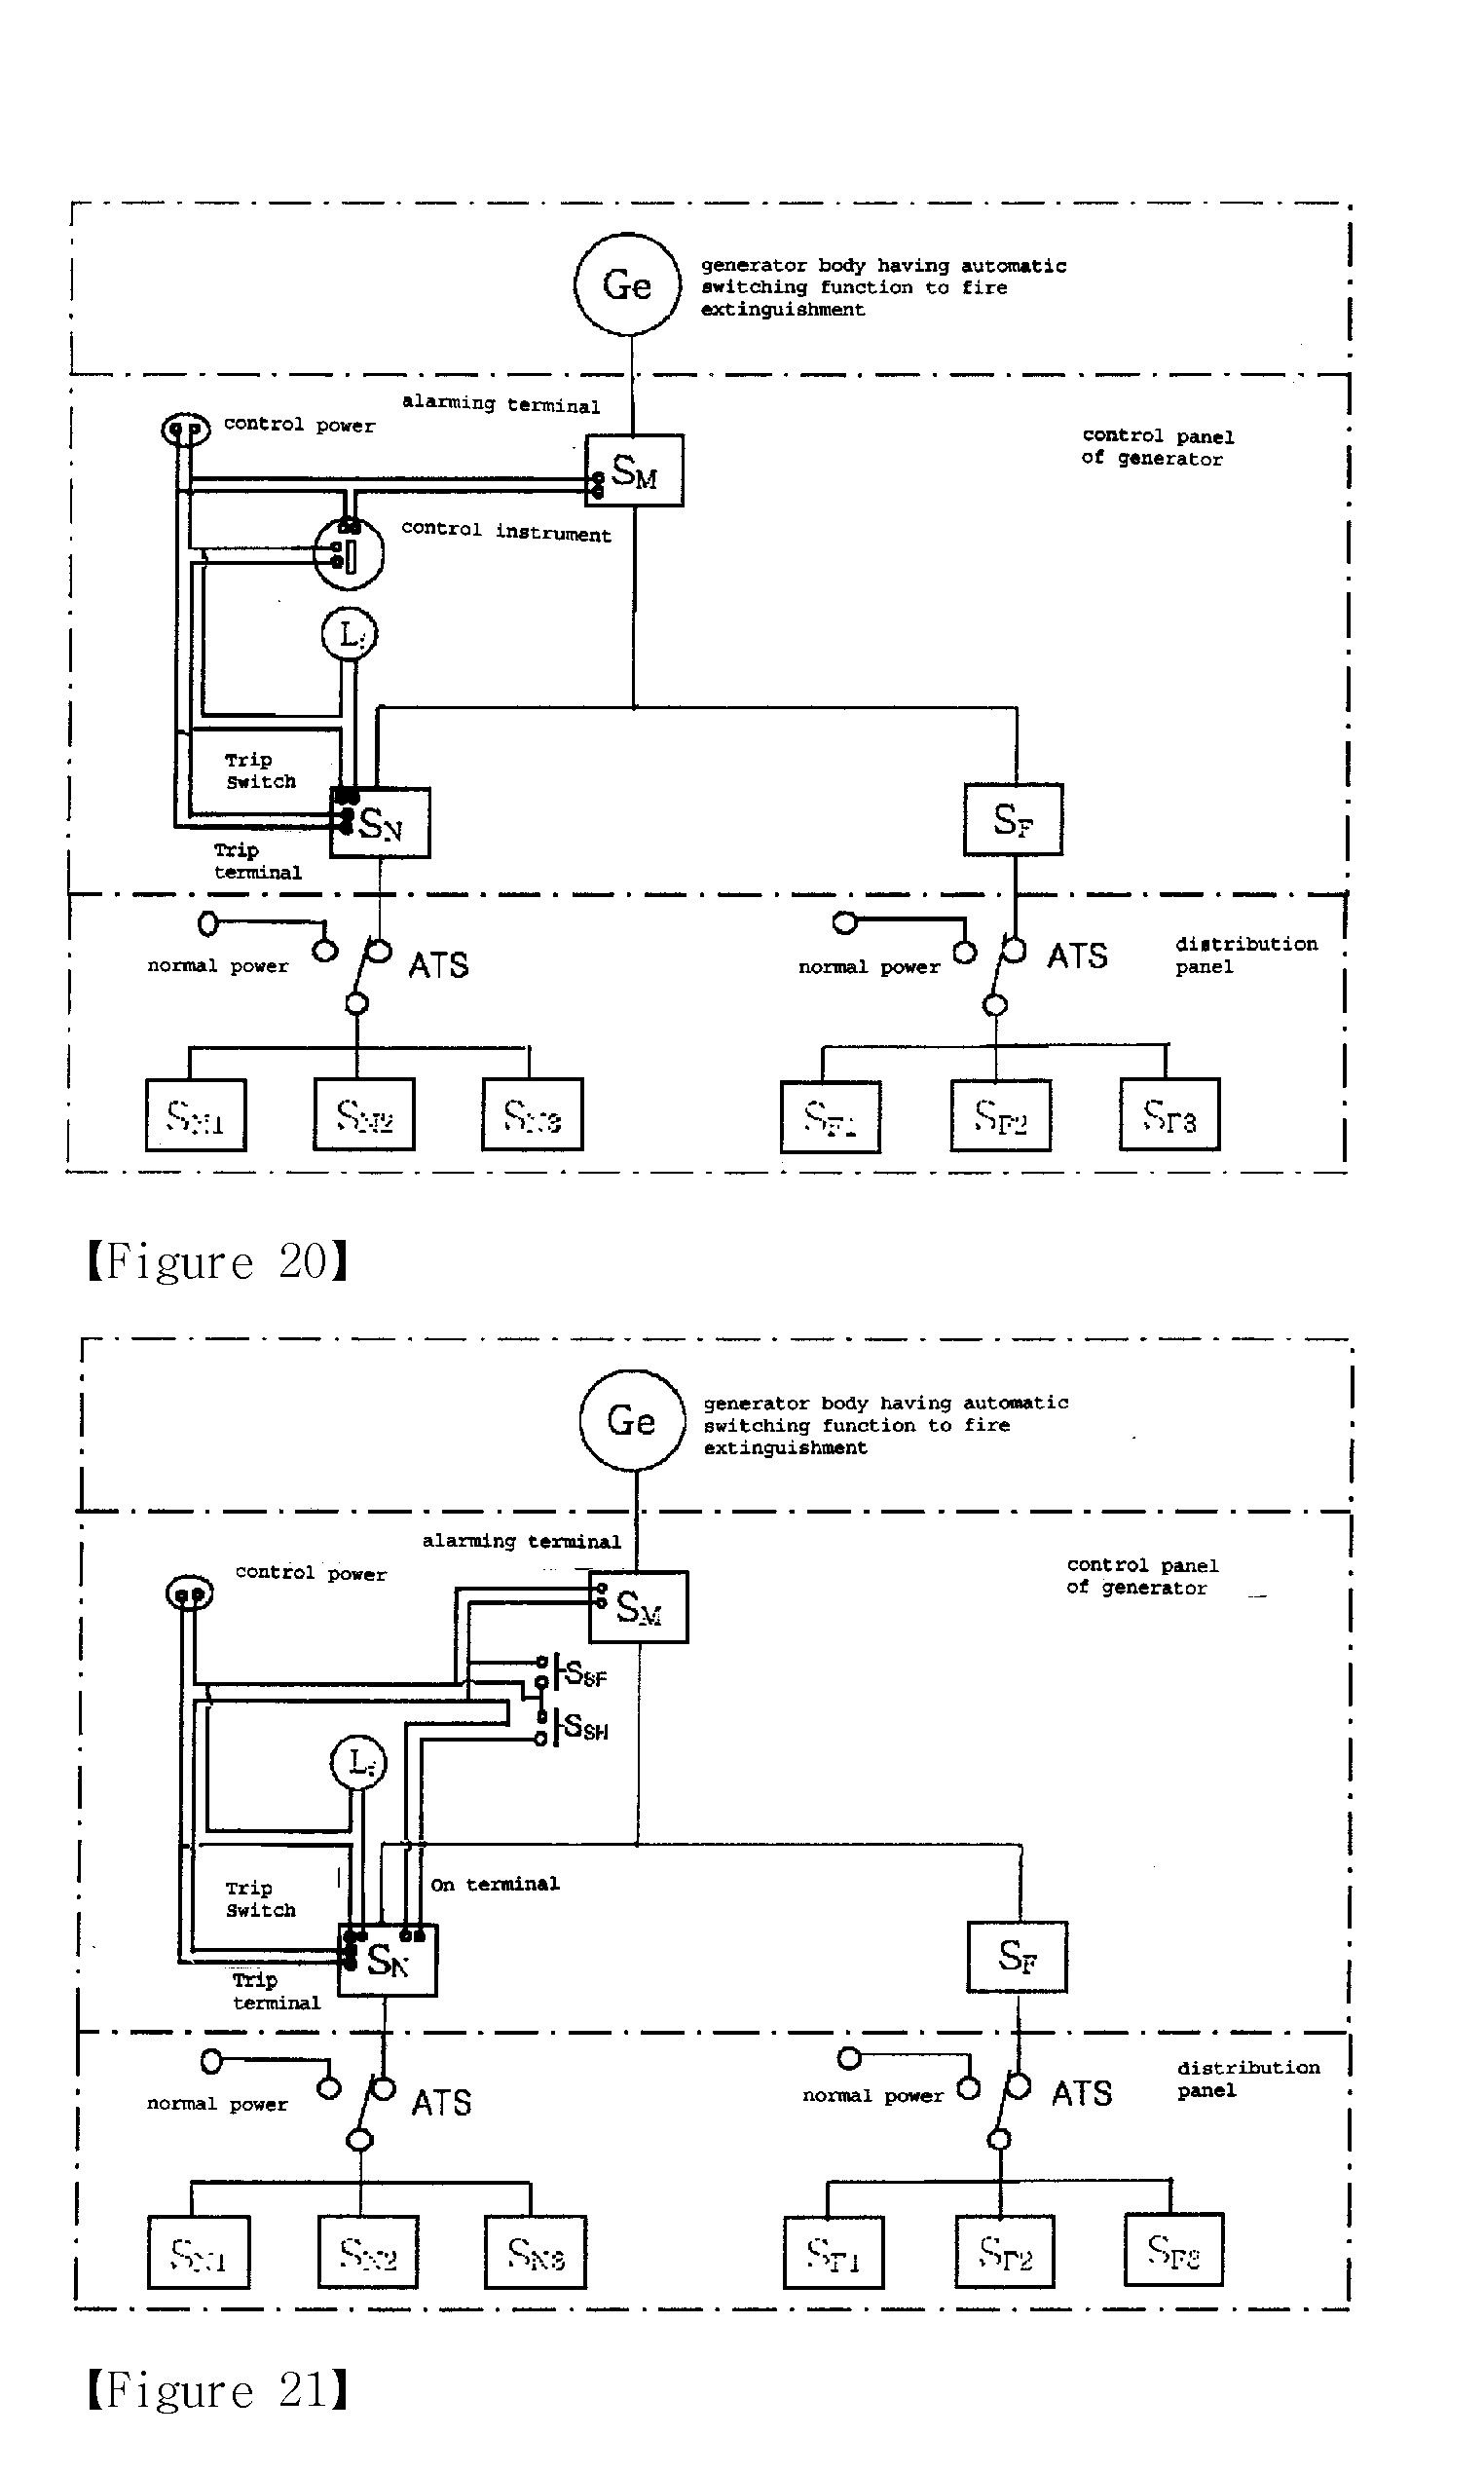 New Fire Alarm System Wiring Diagram Pdf Home Security Systems Fire Alarm System Fire Alarm